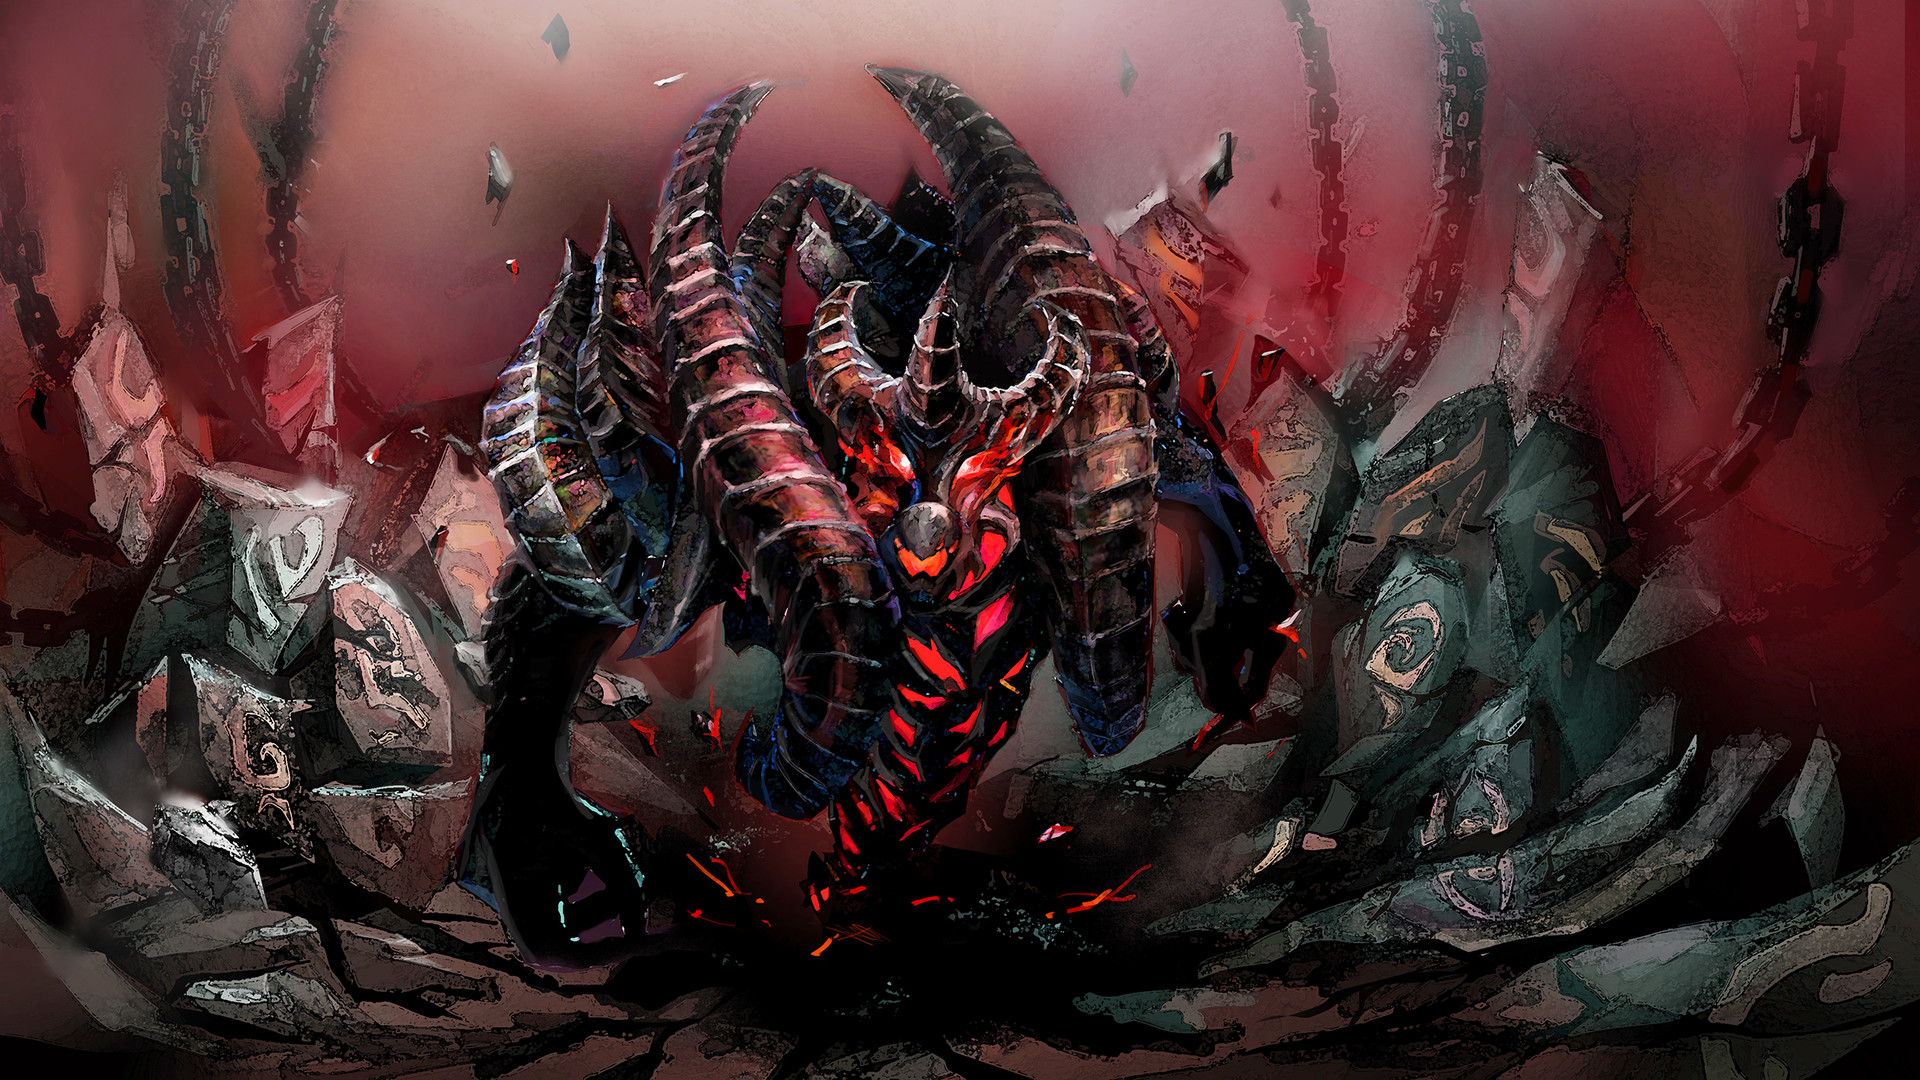 Son Duong Ancient Darknessthe Shadow Fiend